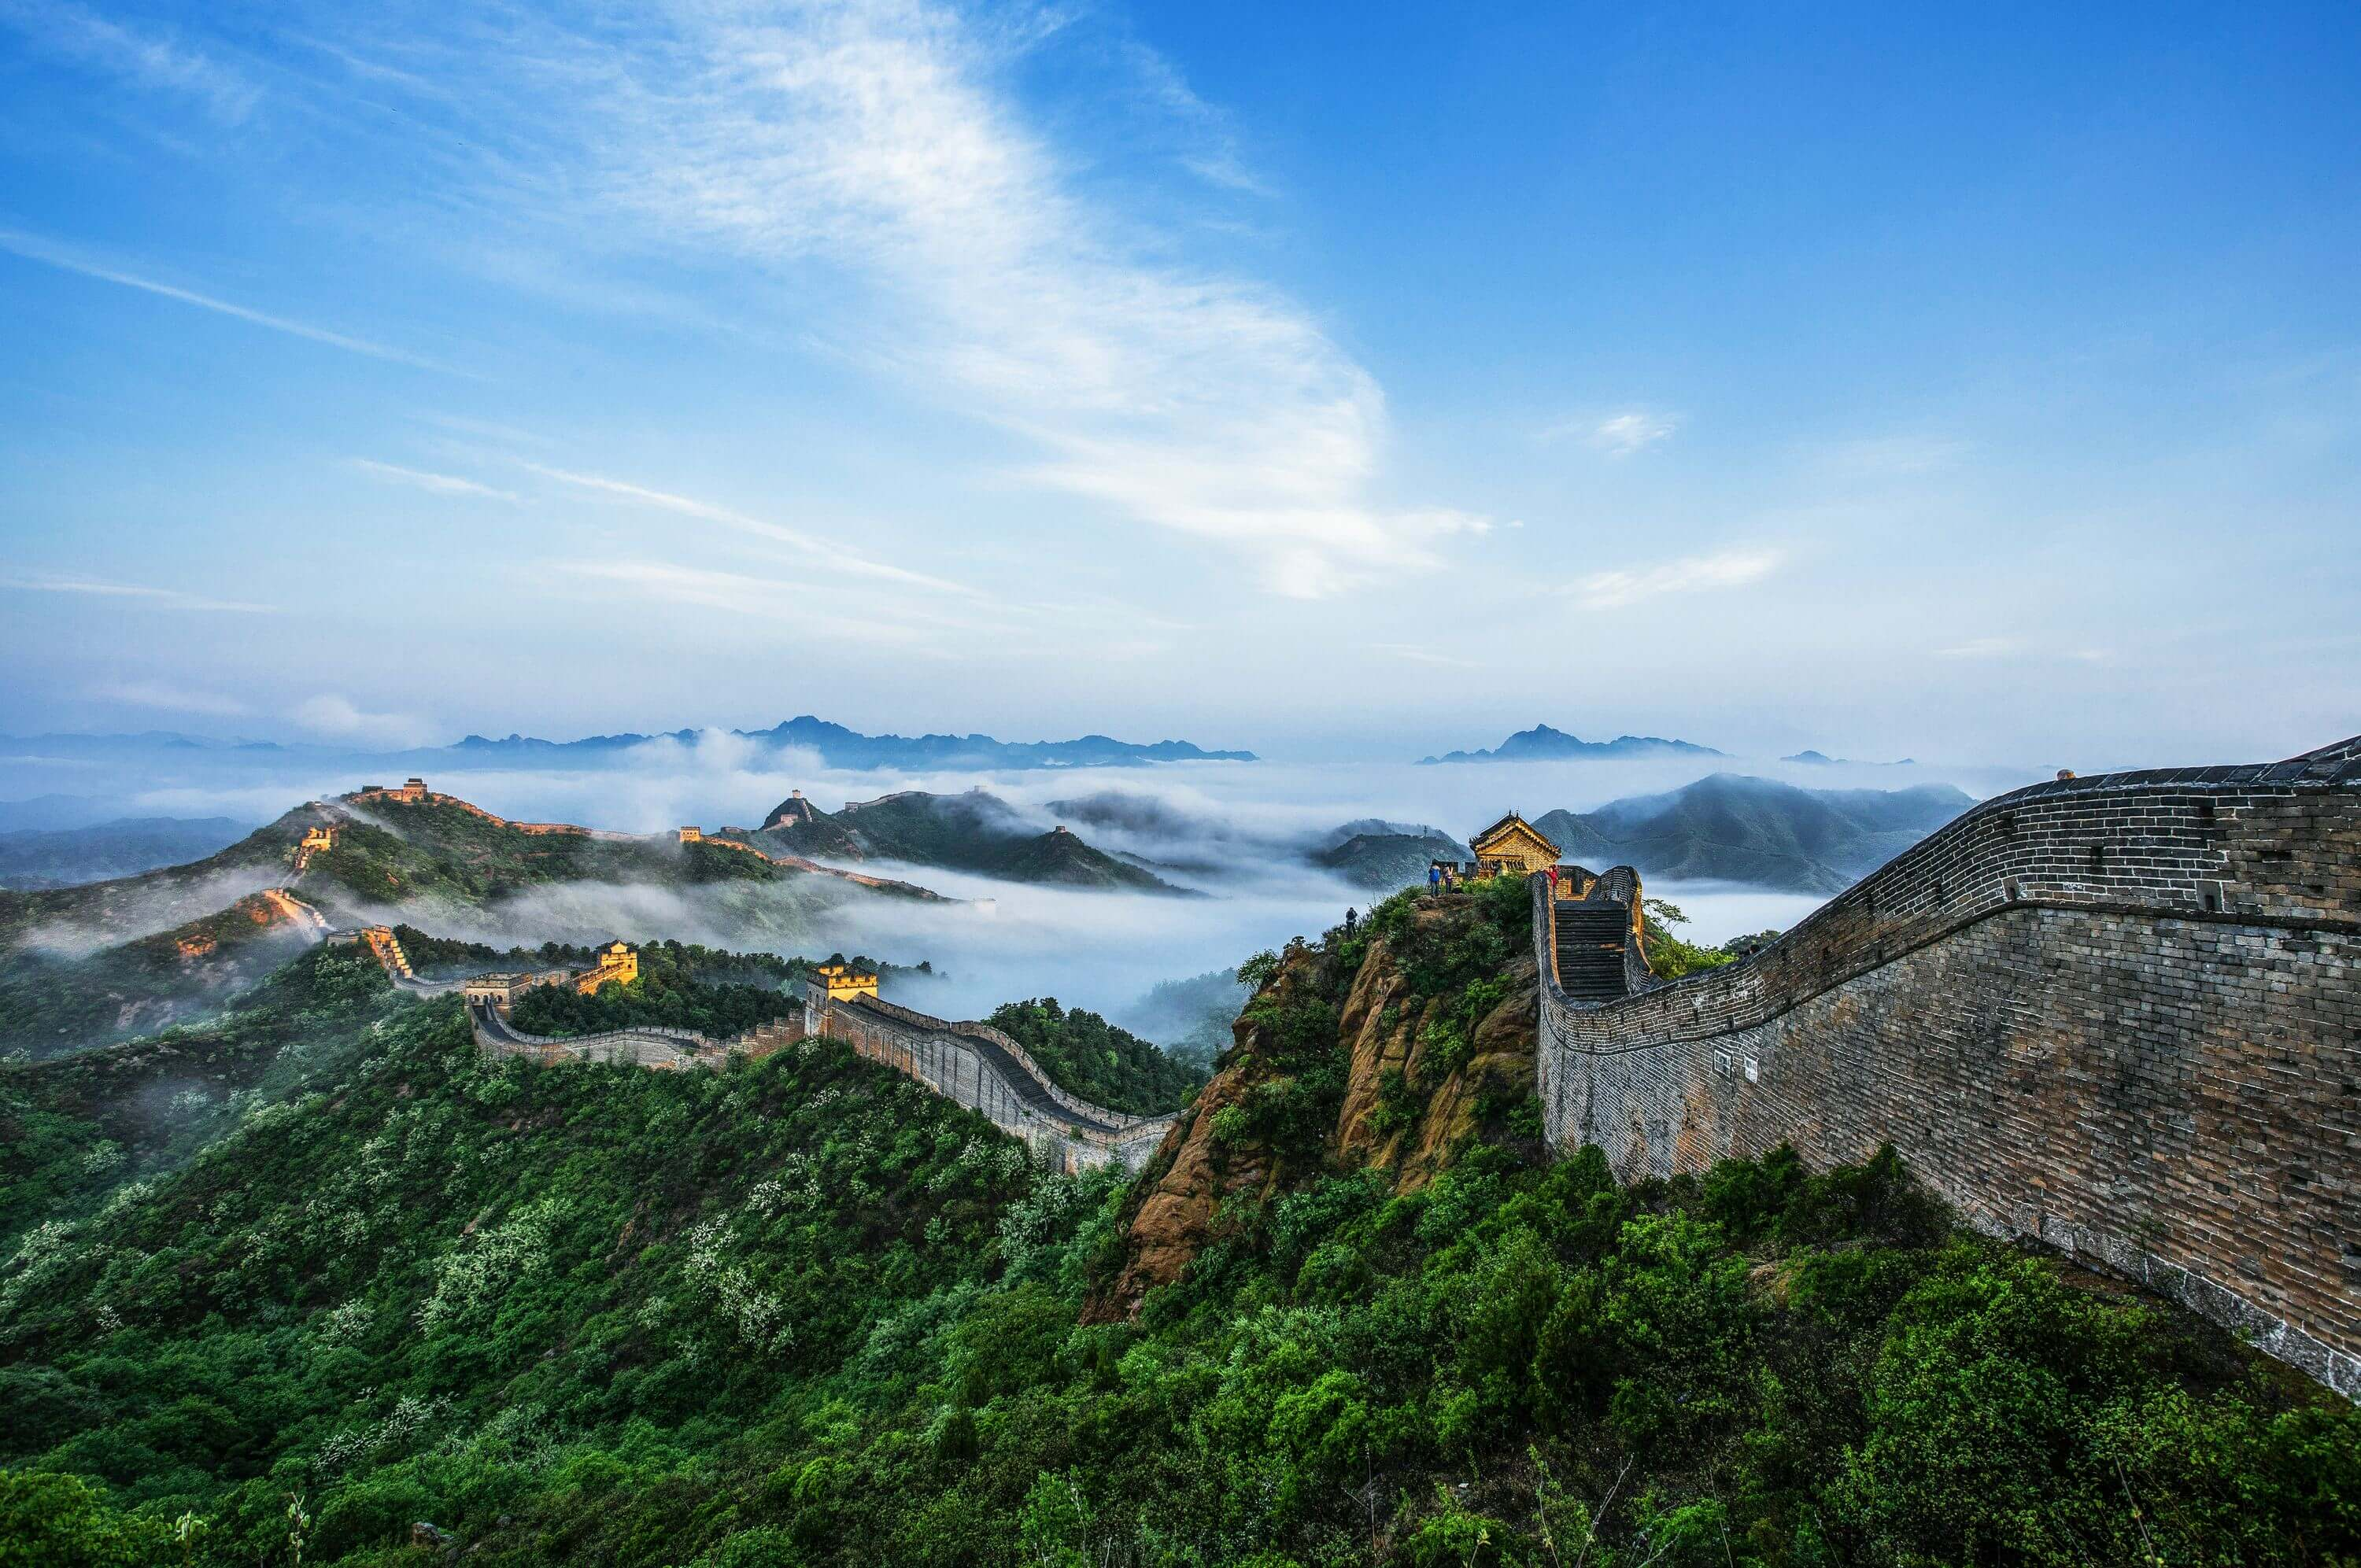 How To Get To Jinshanling Great Wall From Beijing 2019